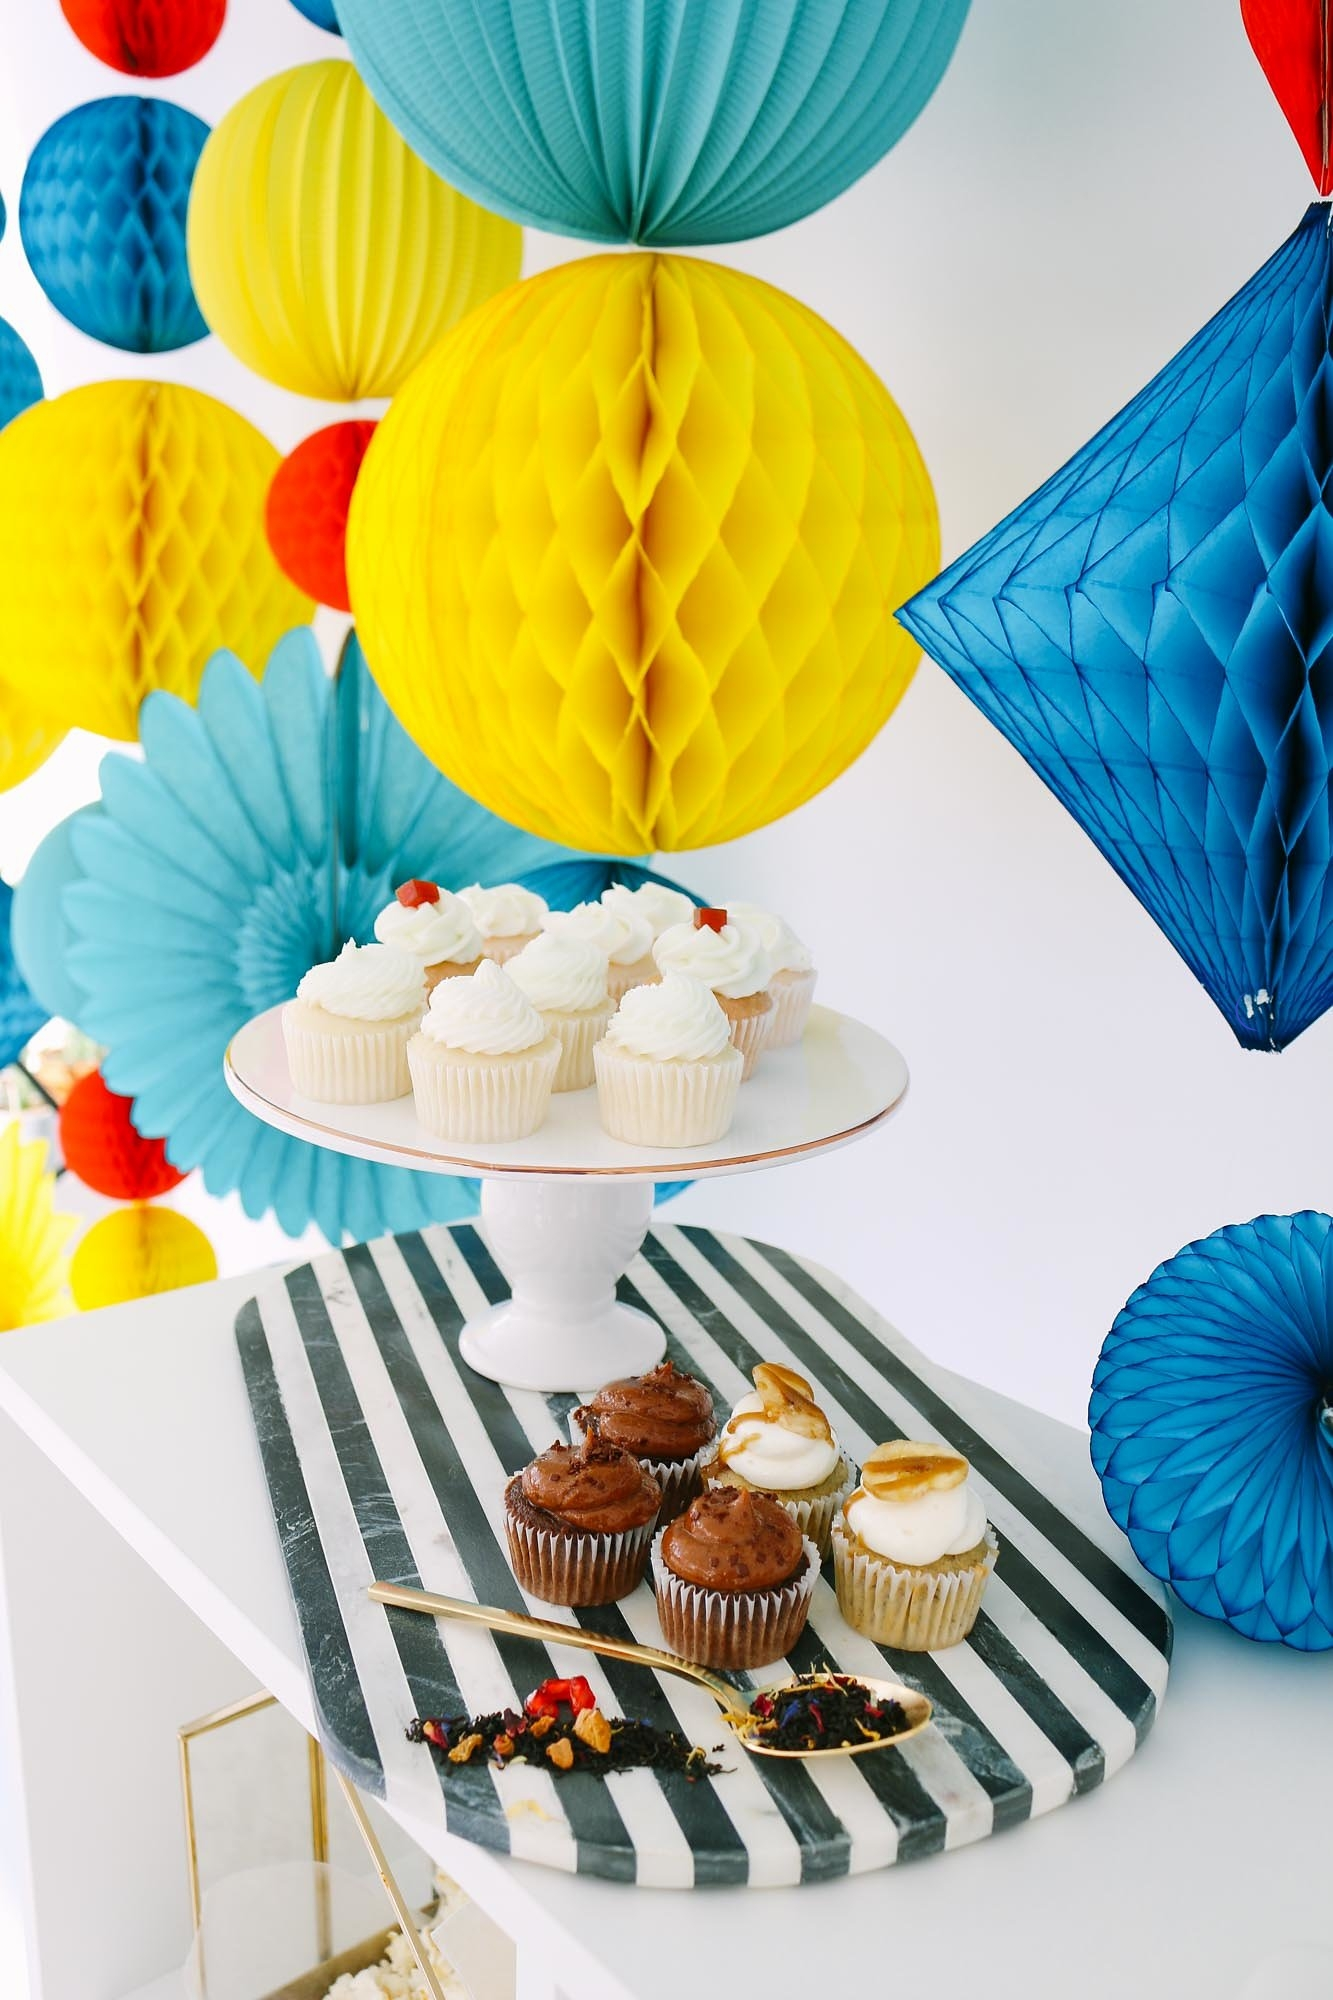 Cupcakes from Mod Color Party Styled by Tinseldot | Black Twine